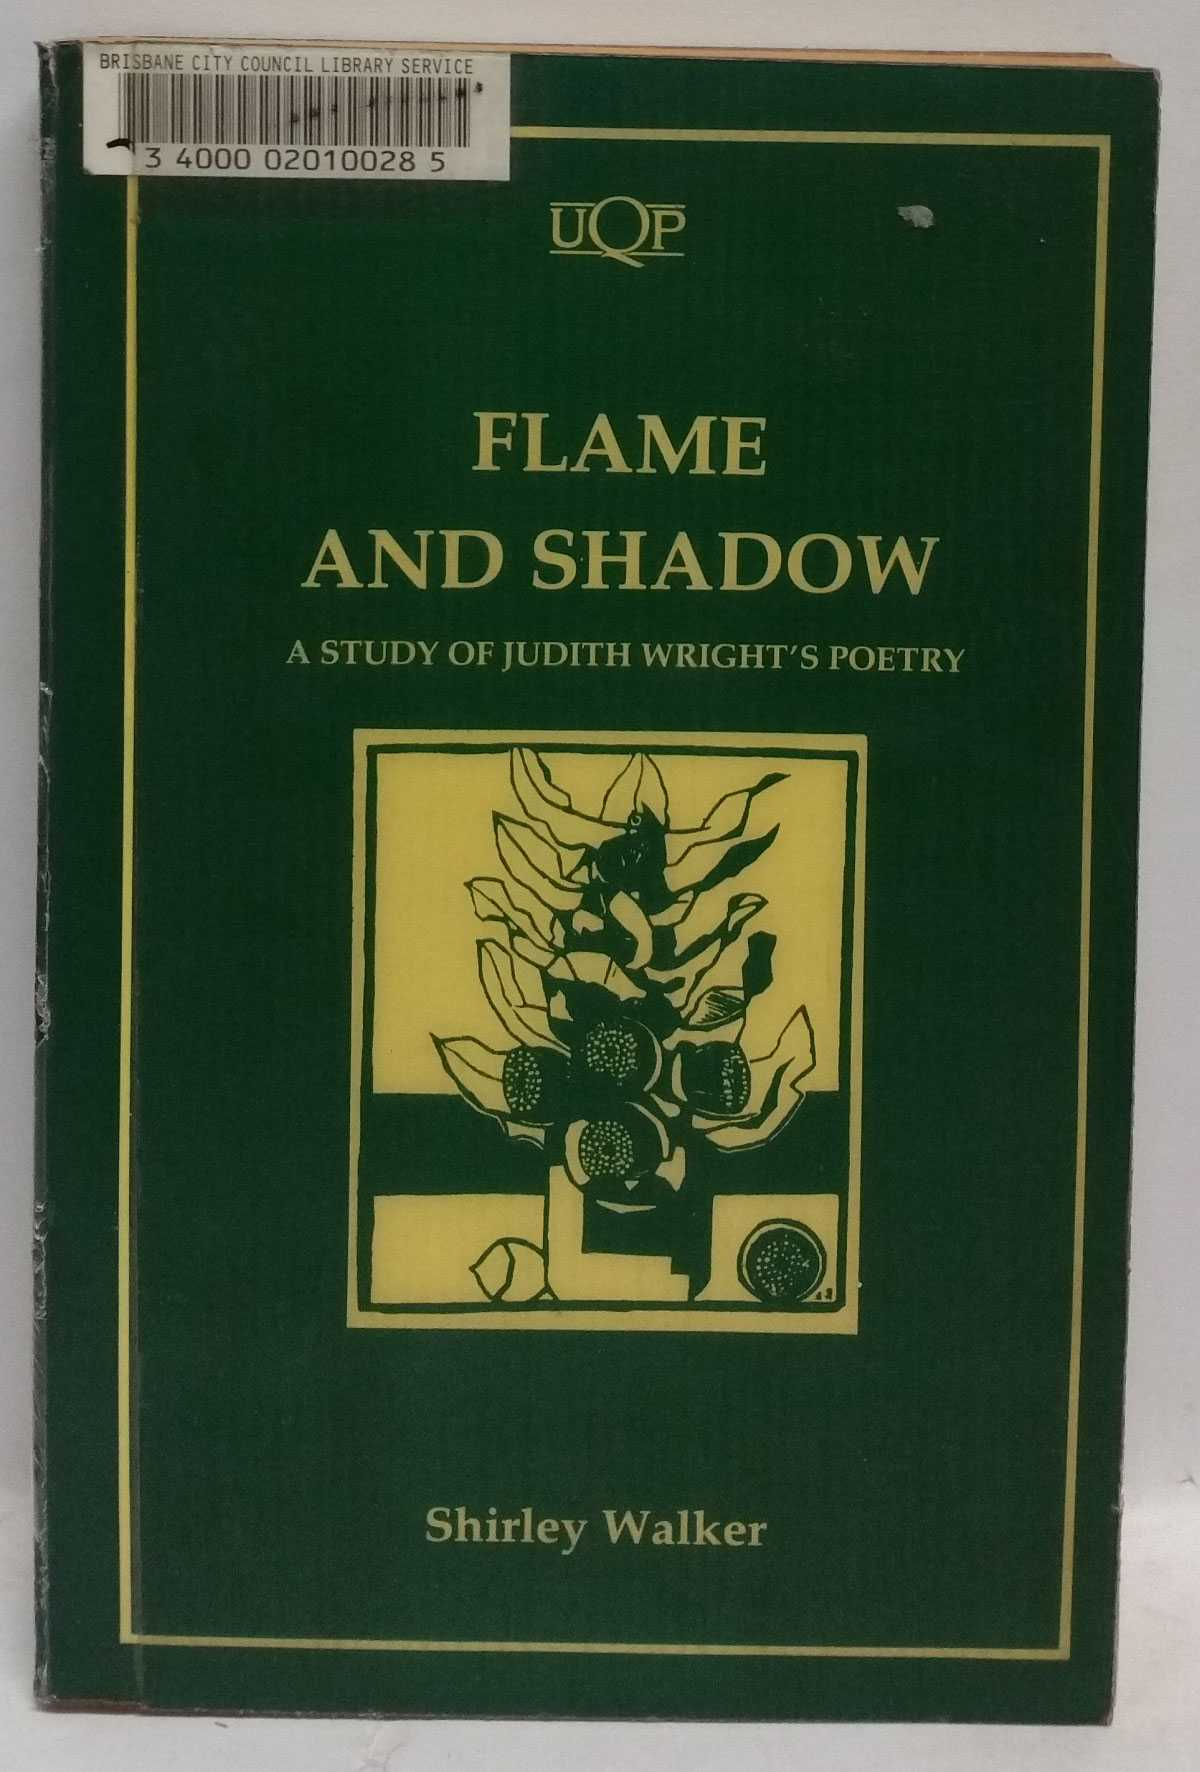 SHIRLEY WALKER - Flame and Shadow: A Study of Judith Wright's Poetry